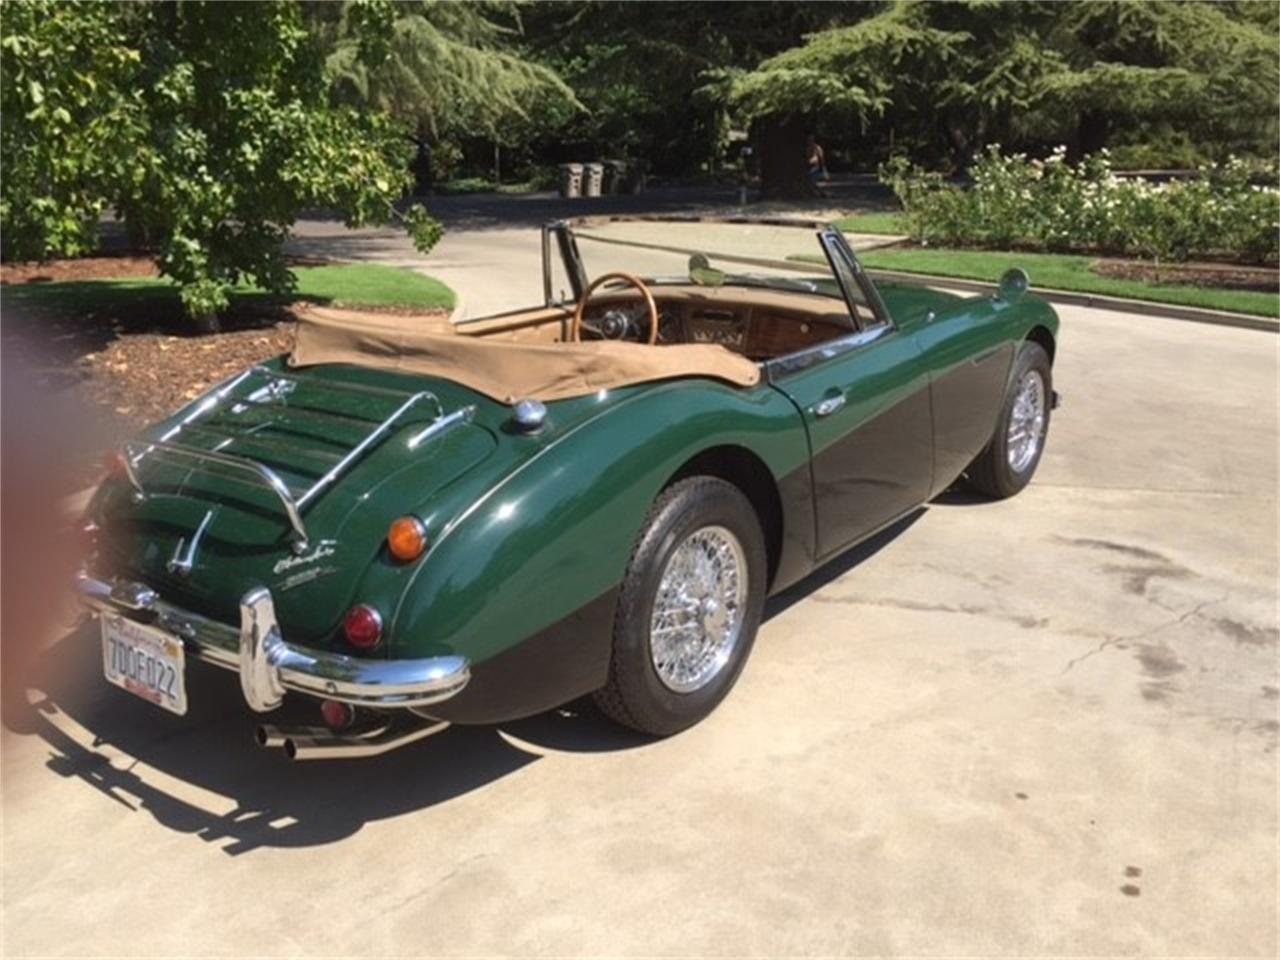 Large Picture of '67 Austin-Healey 3000 - $65,000.00 - LBWQ